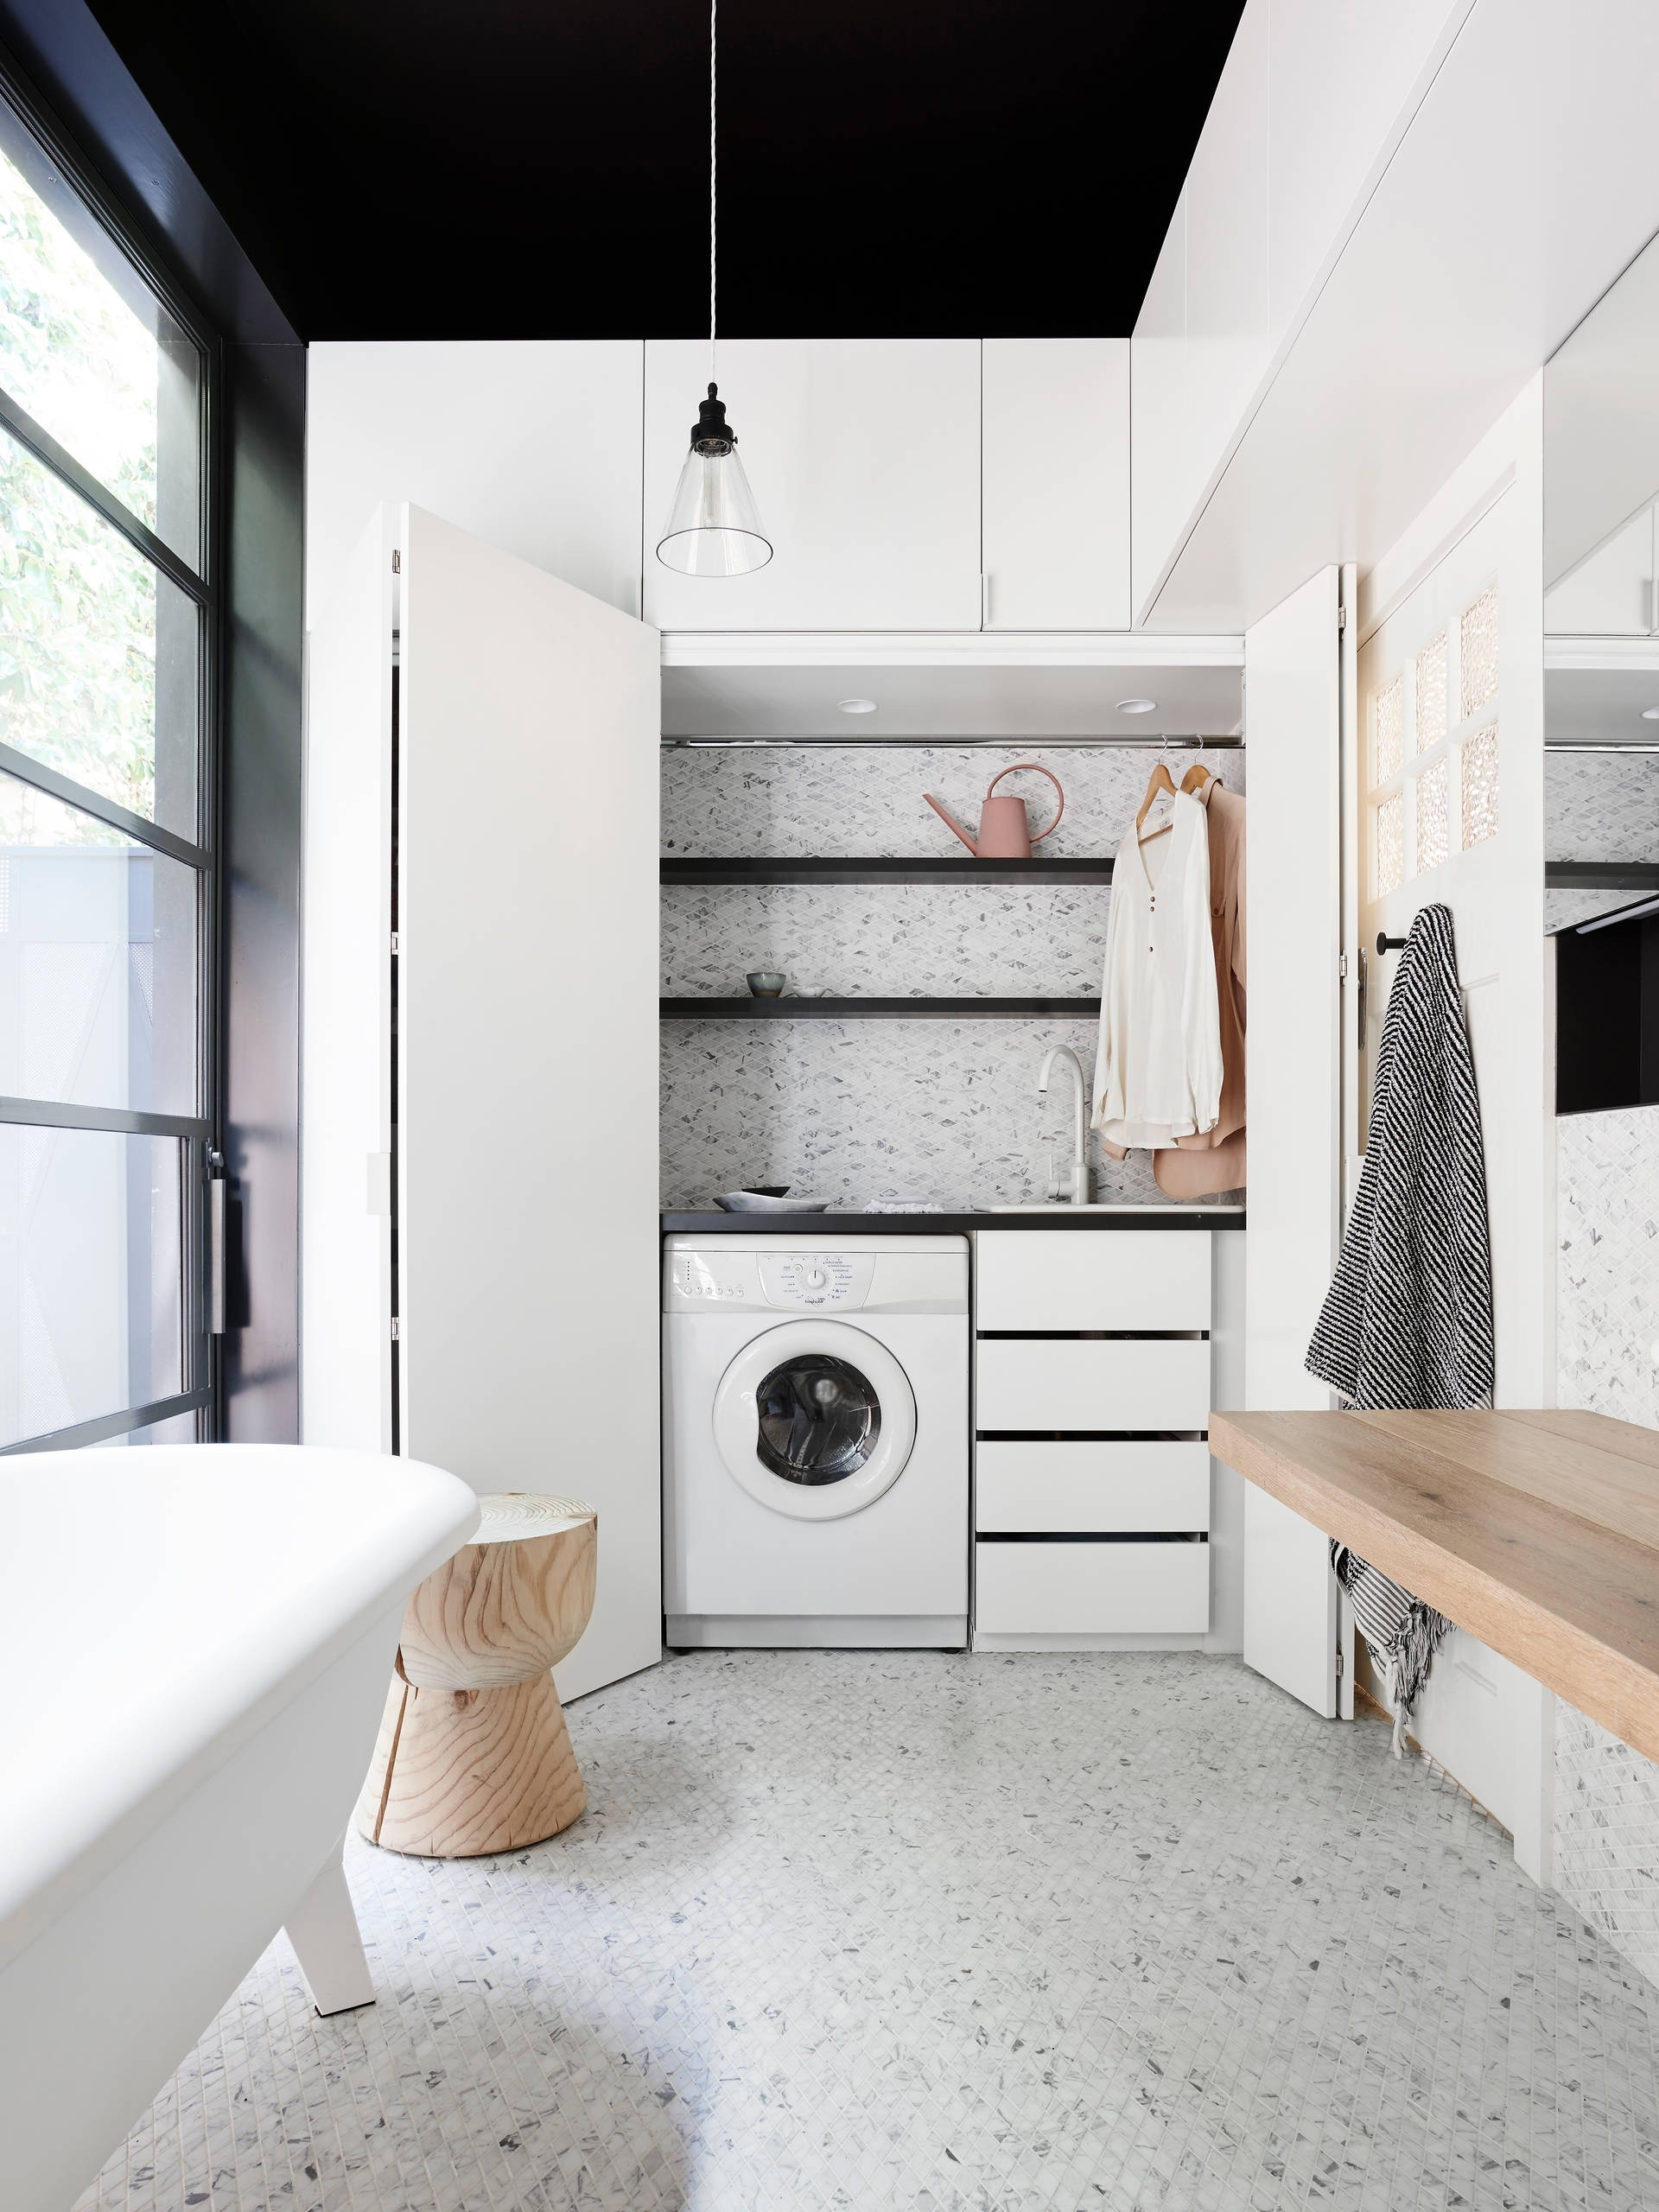 75 Beautiful Bathroom/Laundry Room Pictures & Ideas Combined Bathroom And Laundry